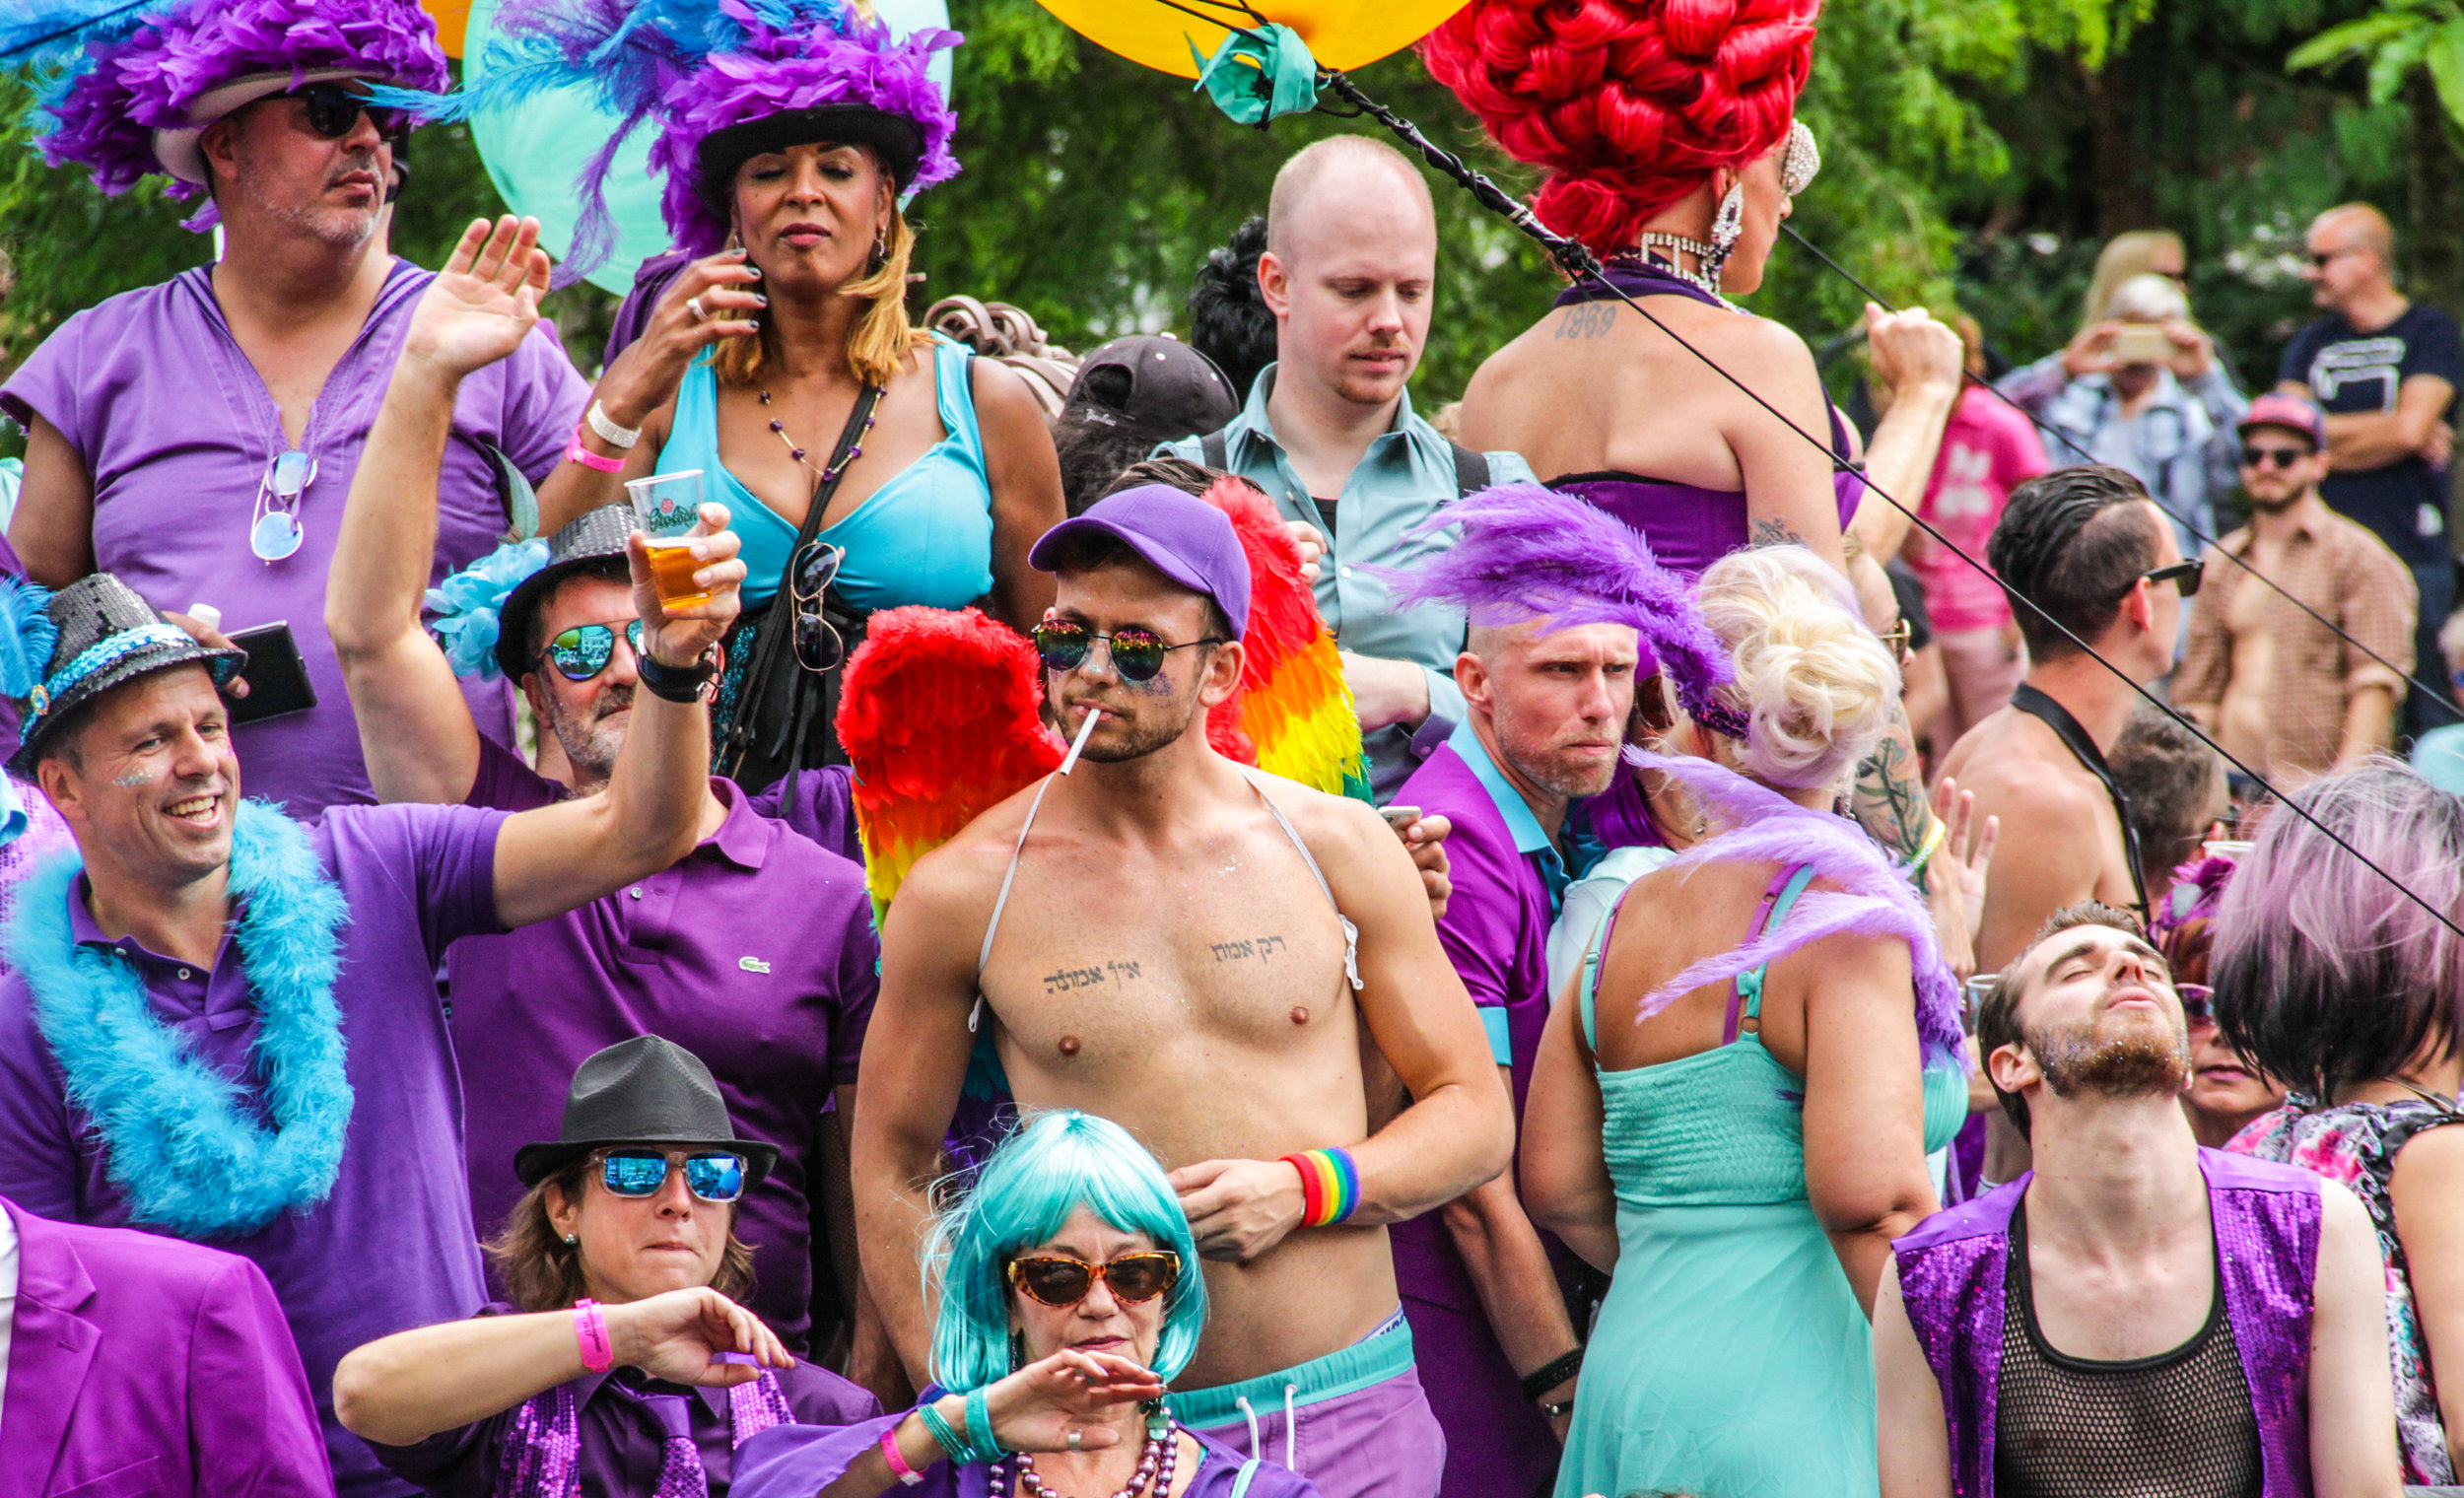 Amsterdam, Netherlands – August 5, 2017 - Gay Festival - Crow